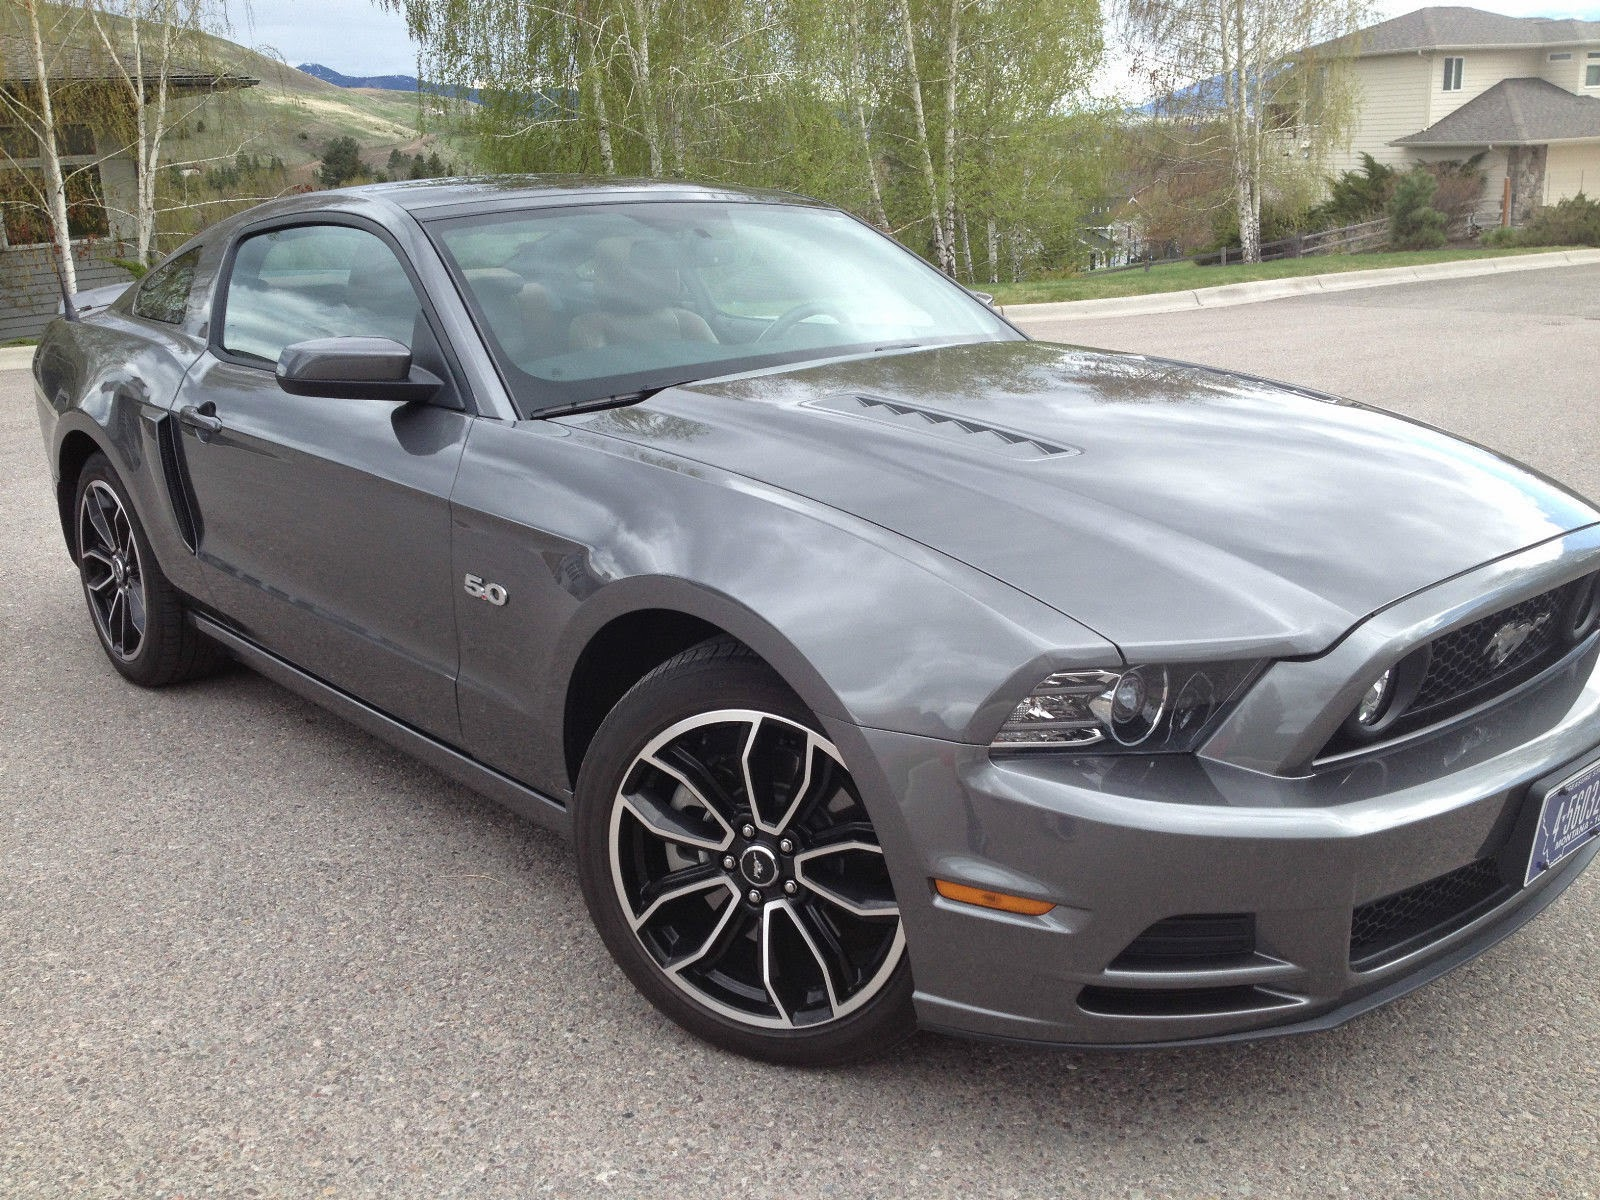 Perfect condition smoke gray 2013 mustang gt premiumkept in climate controlled garage at home low milage 12k nearly all hwy fully loaded with gps